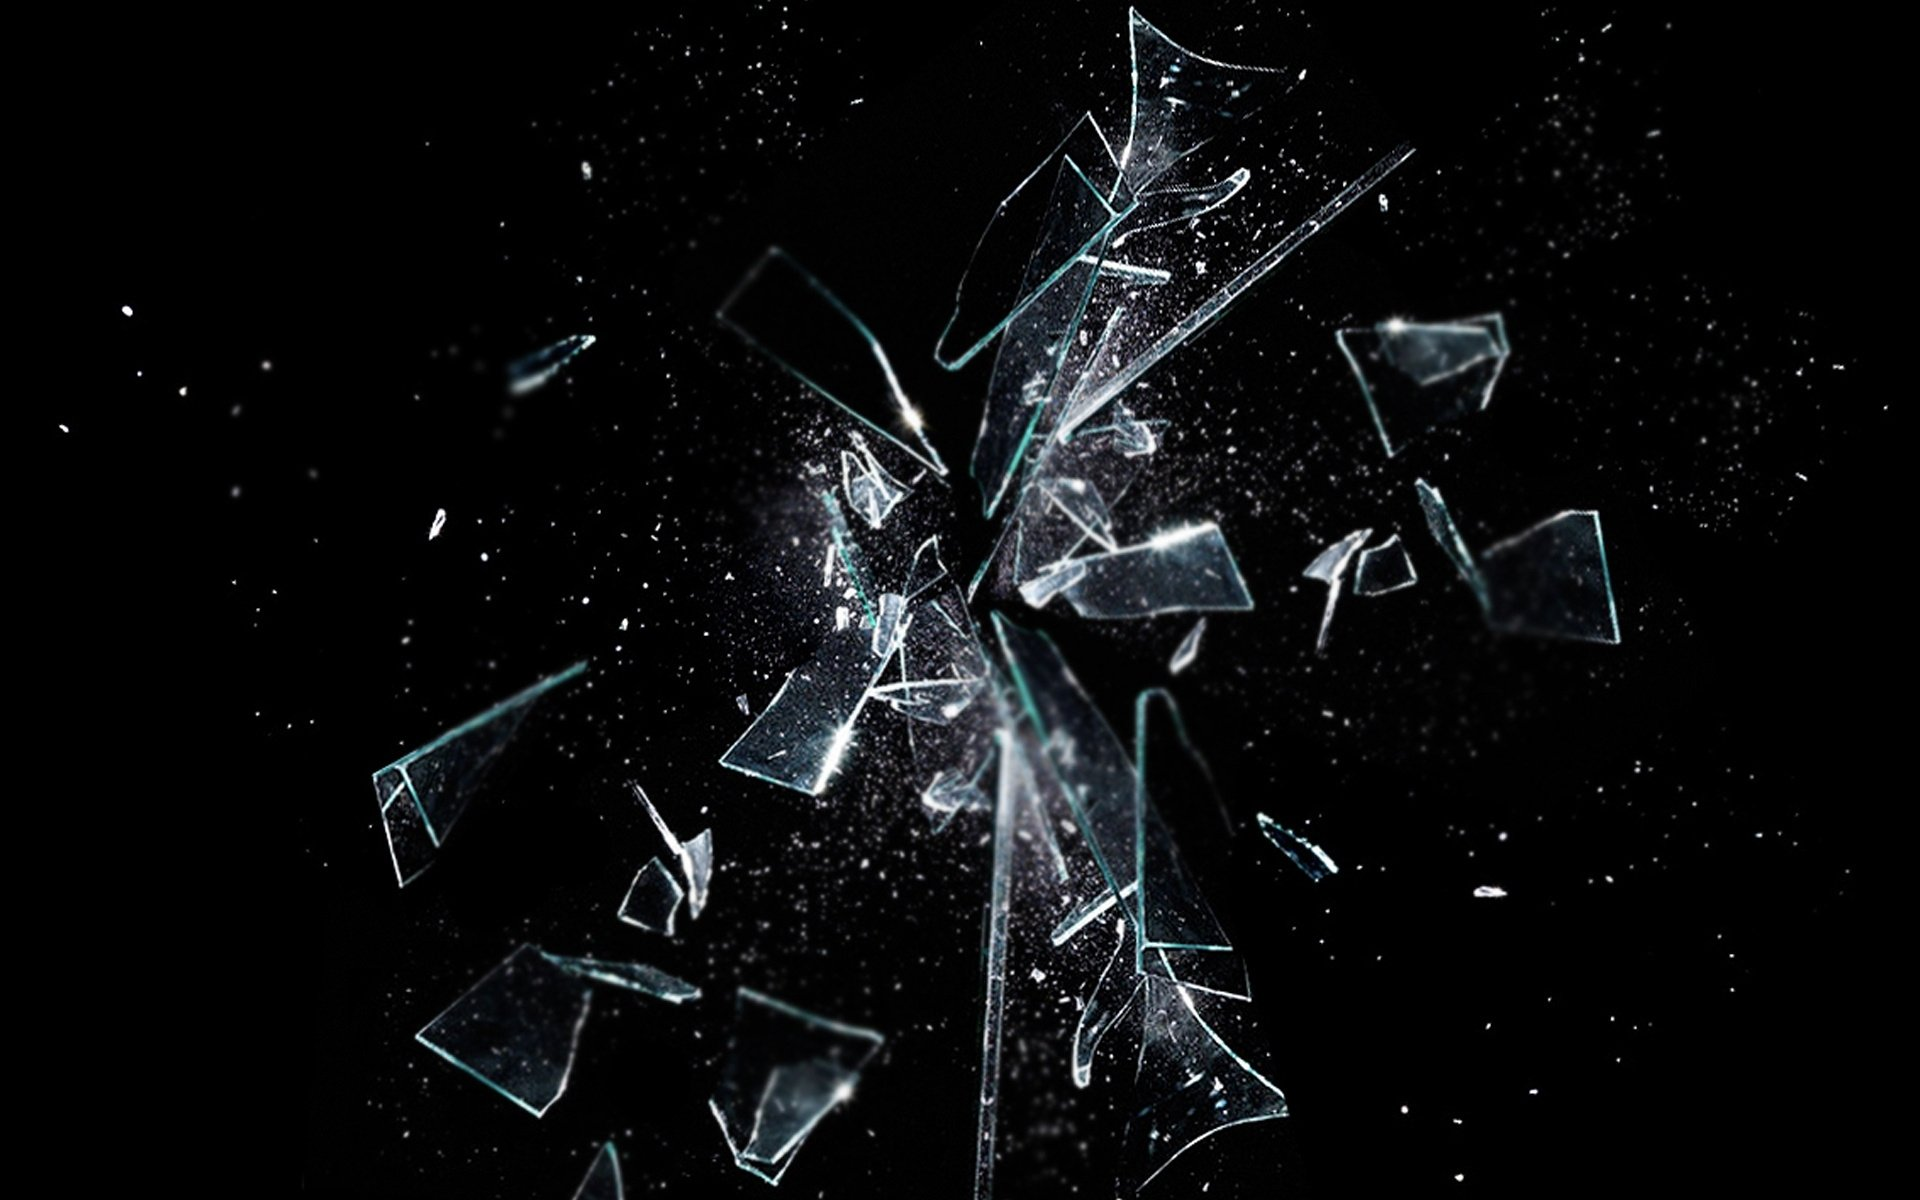 Broken Glass Backgrounds on Wallpapers Vista